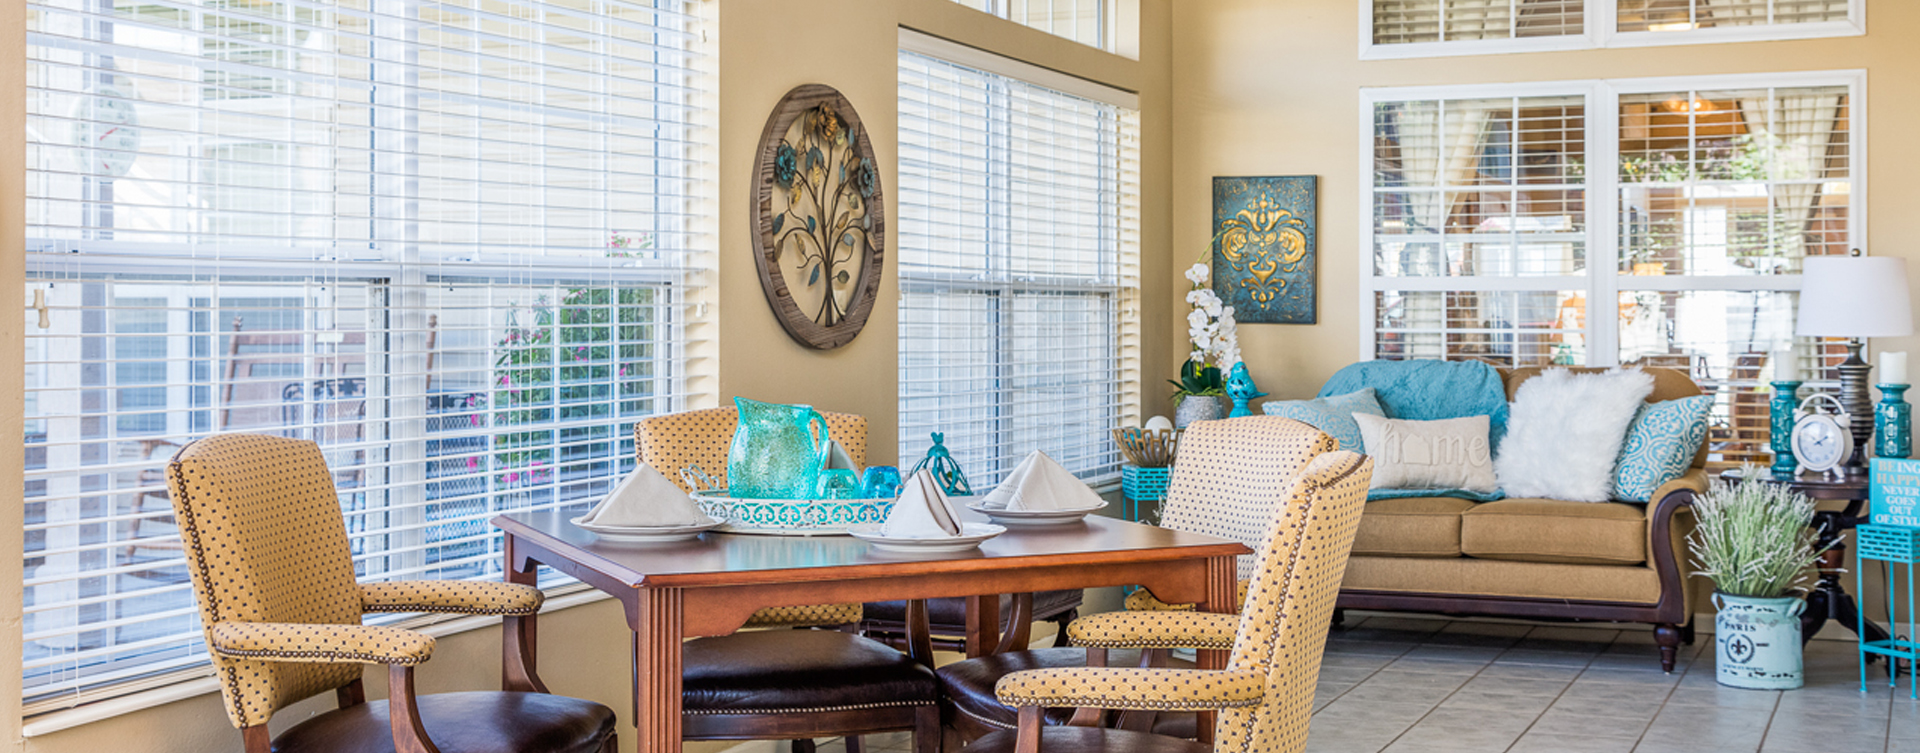 Enjoy the view of the outdoors from the sunroom at Bickford of Ames